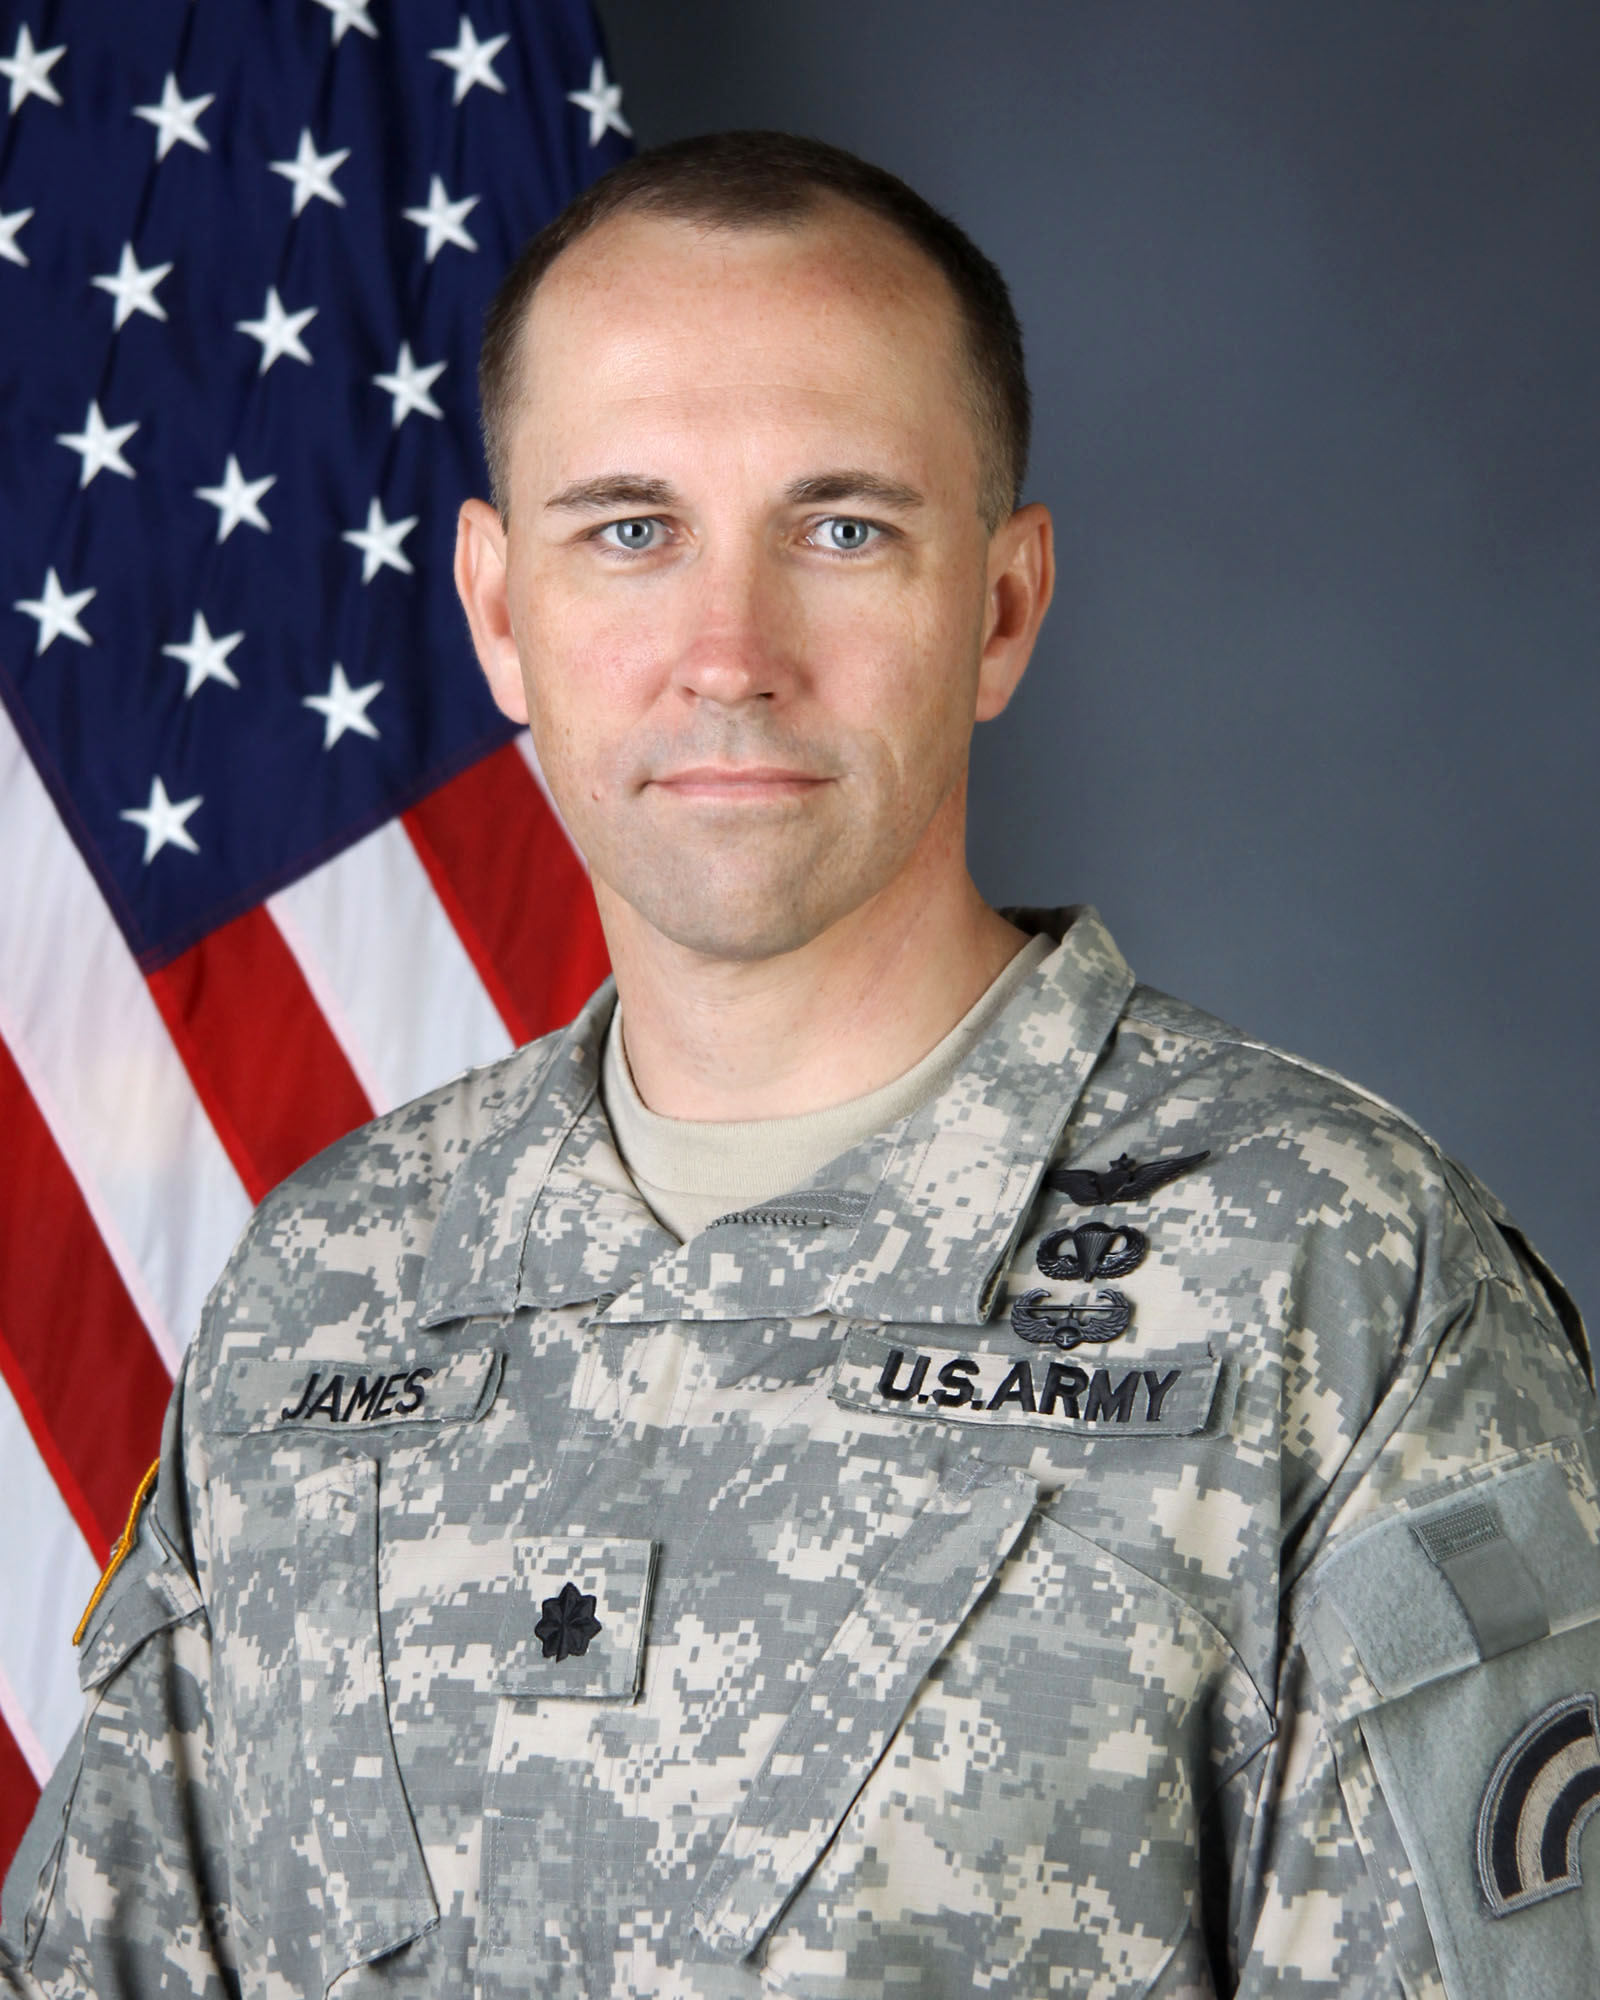 New York Army National Guard Lt  Col  Jack James named to